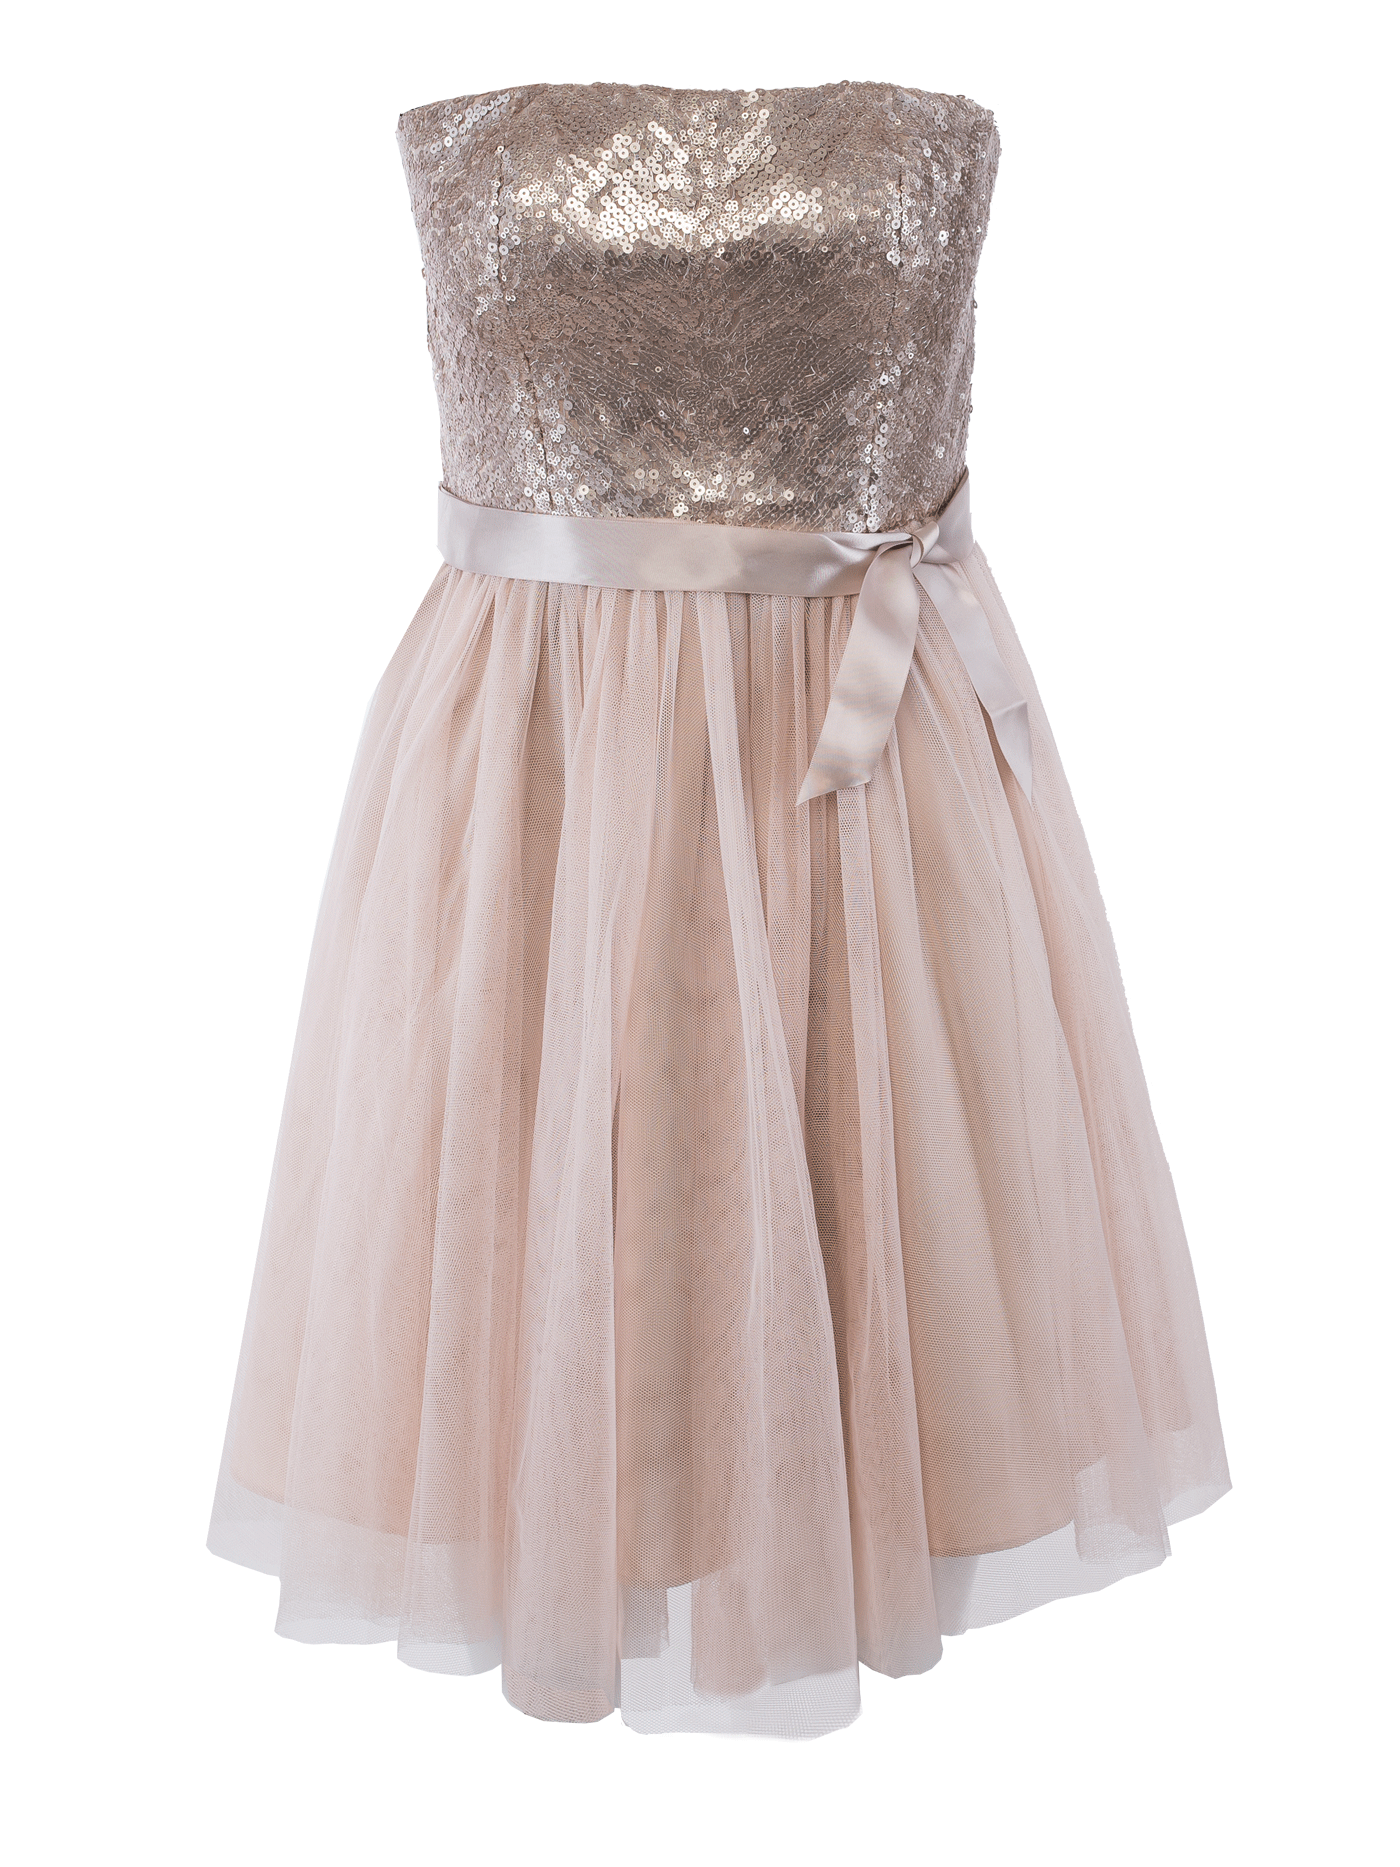 Beaded Strapless Party Cocktail Dress in Champagne - fEROSh